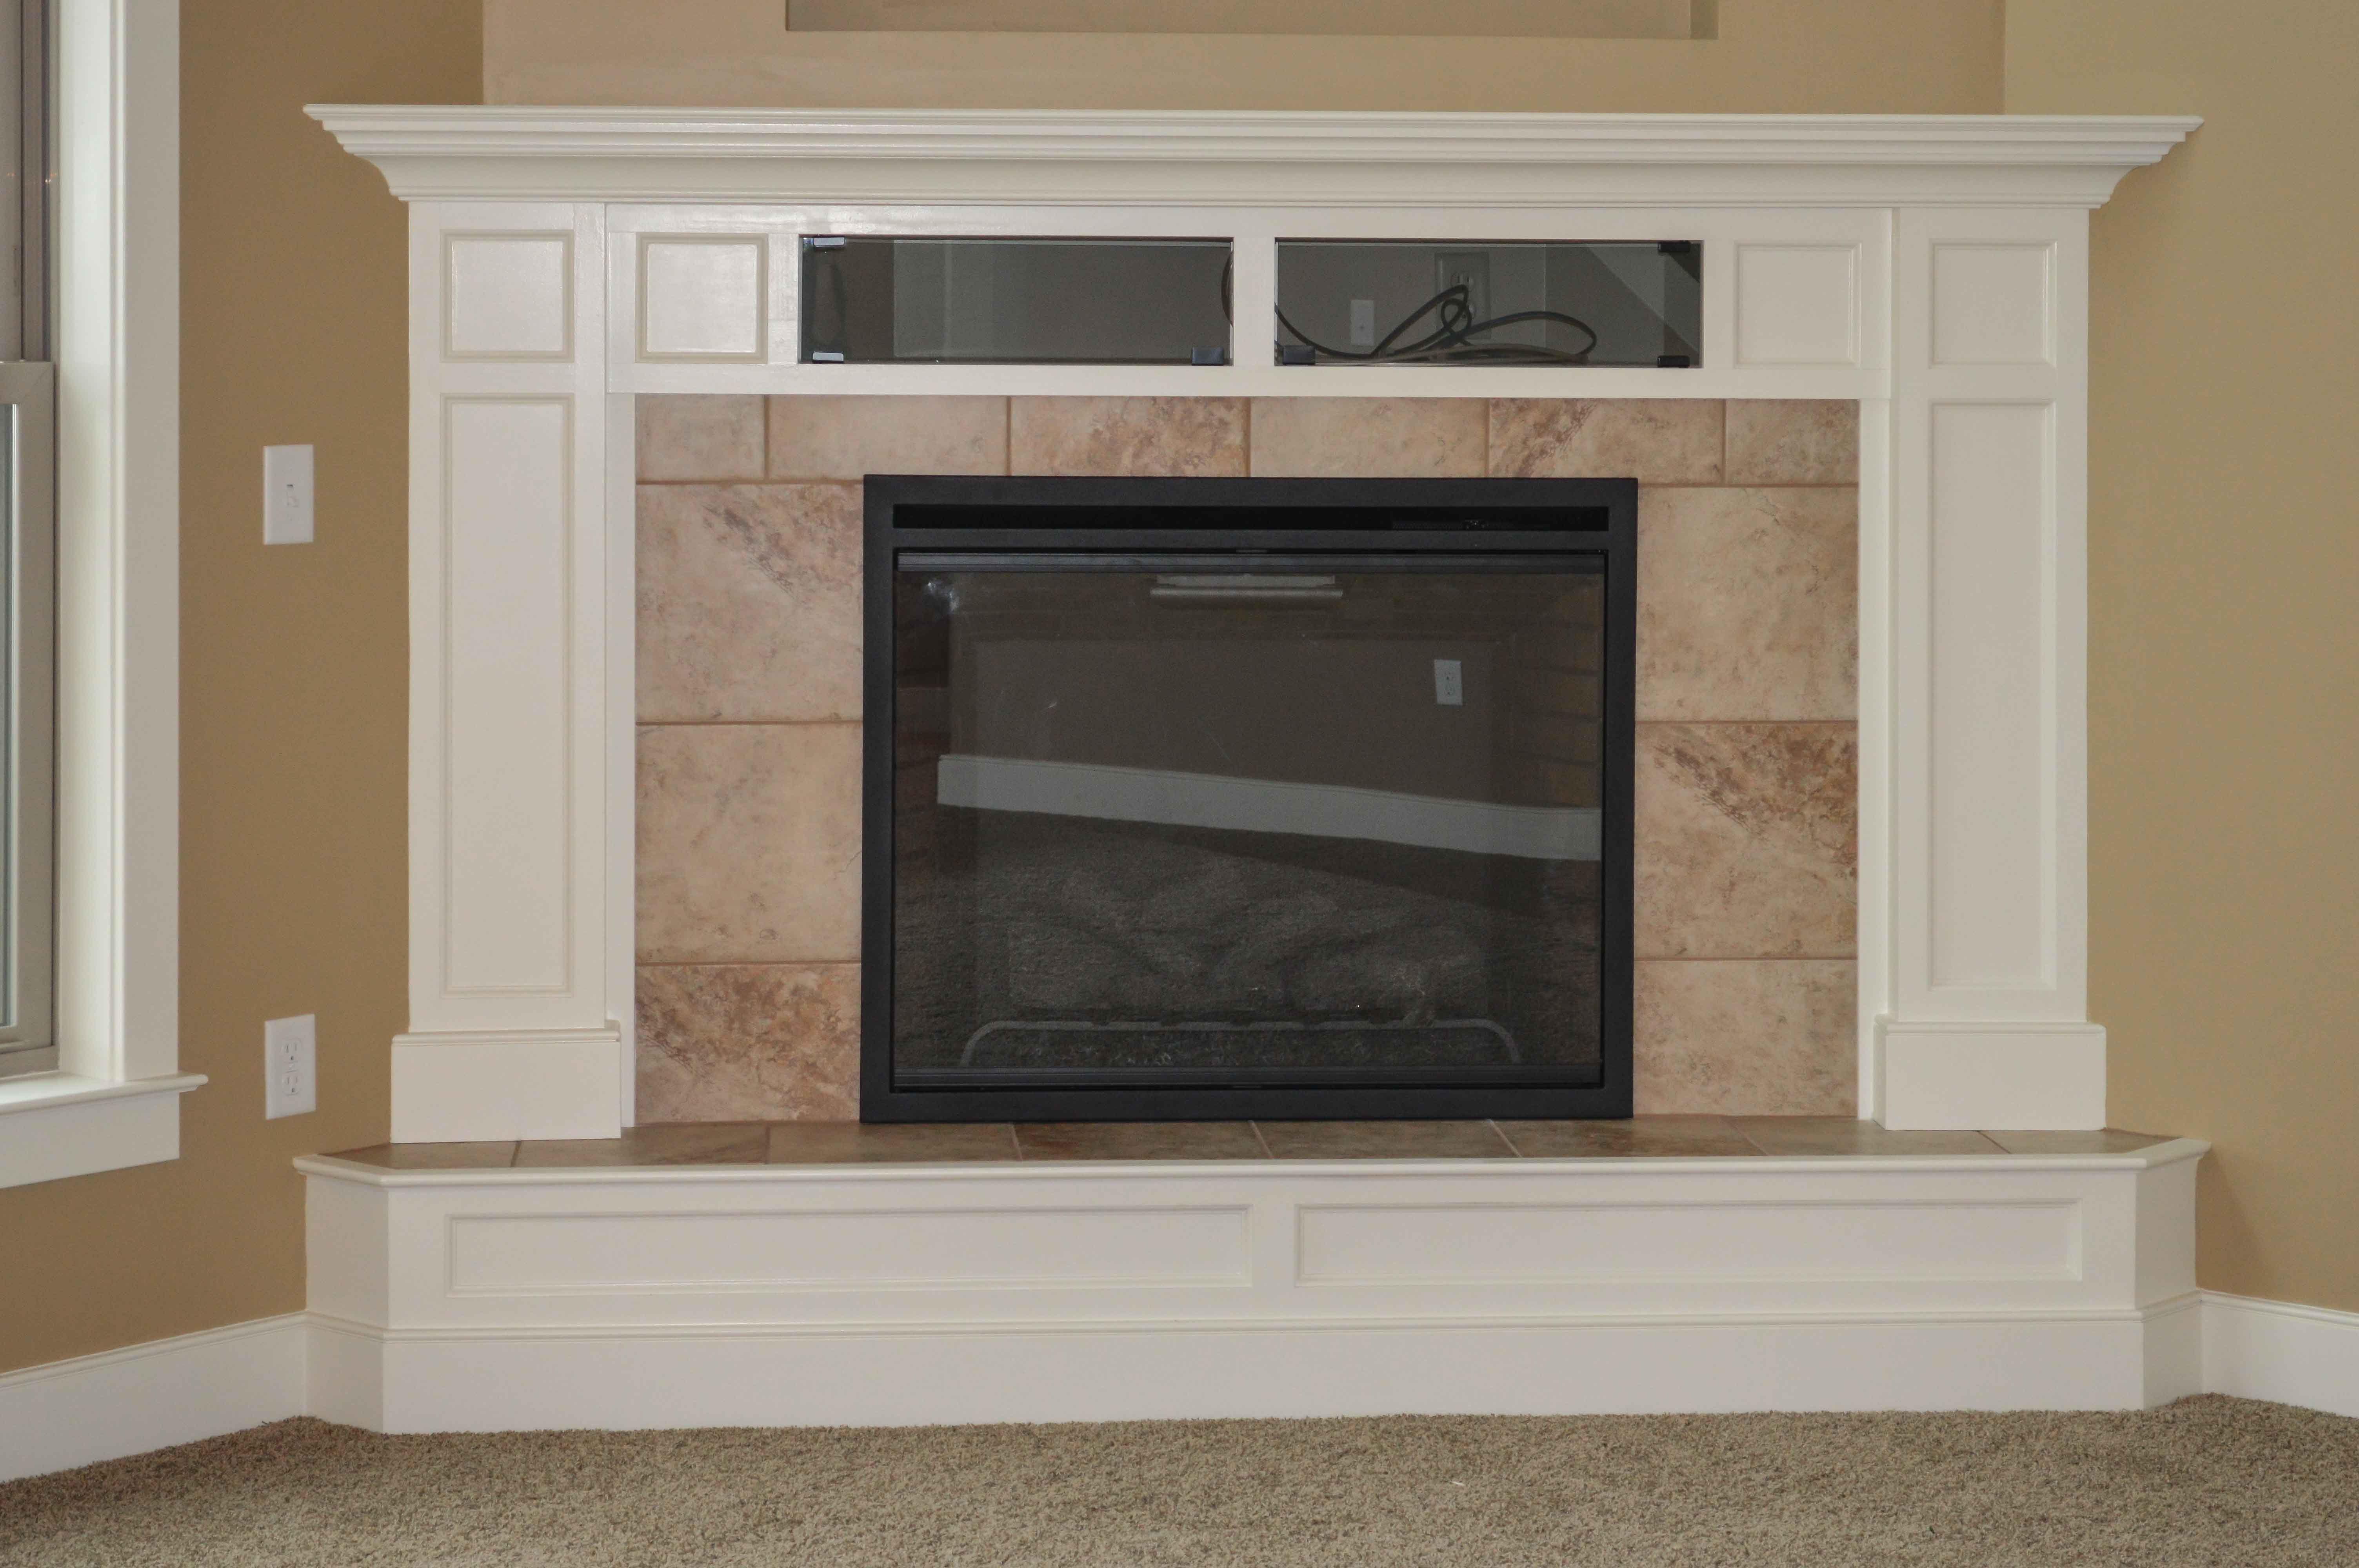 Corner fireplace with raised hearth and ceramic tile surround. Glass door component boxes in mantle